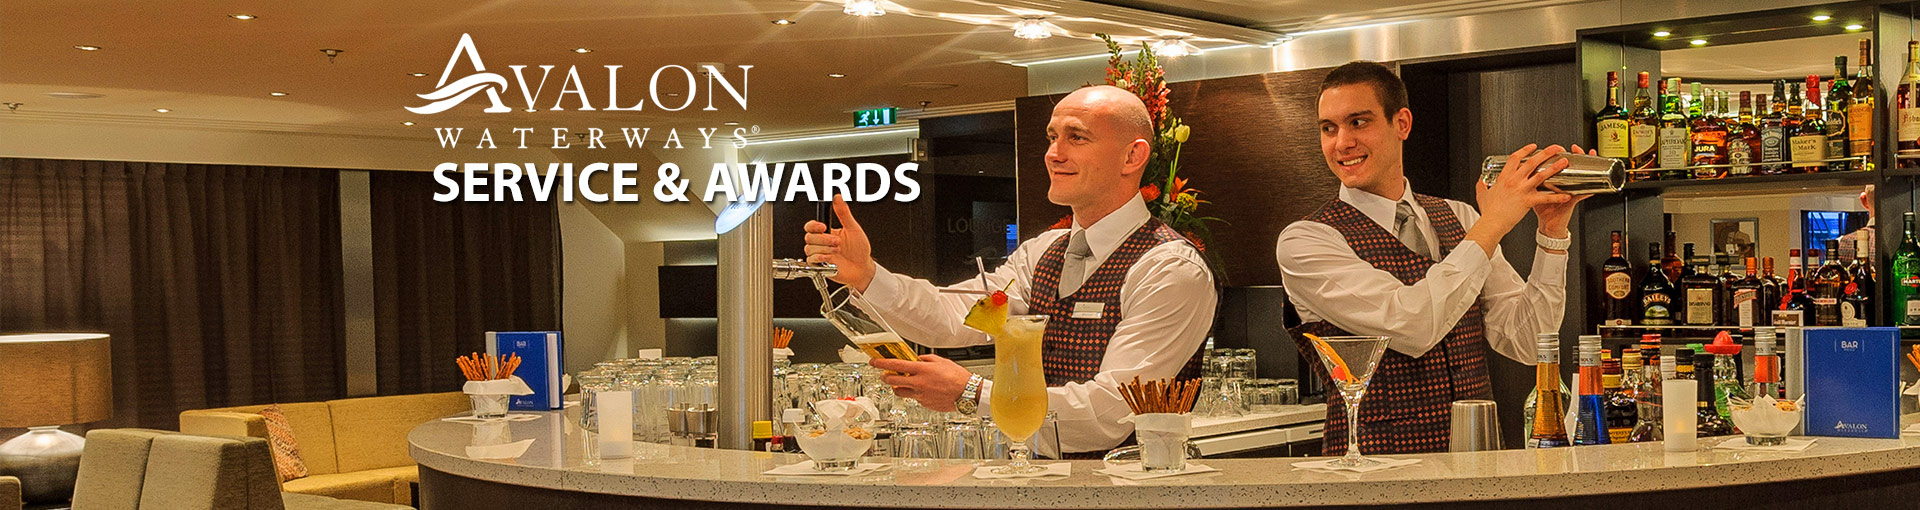 Avalon Waterways Service & Awards